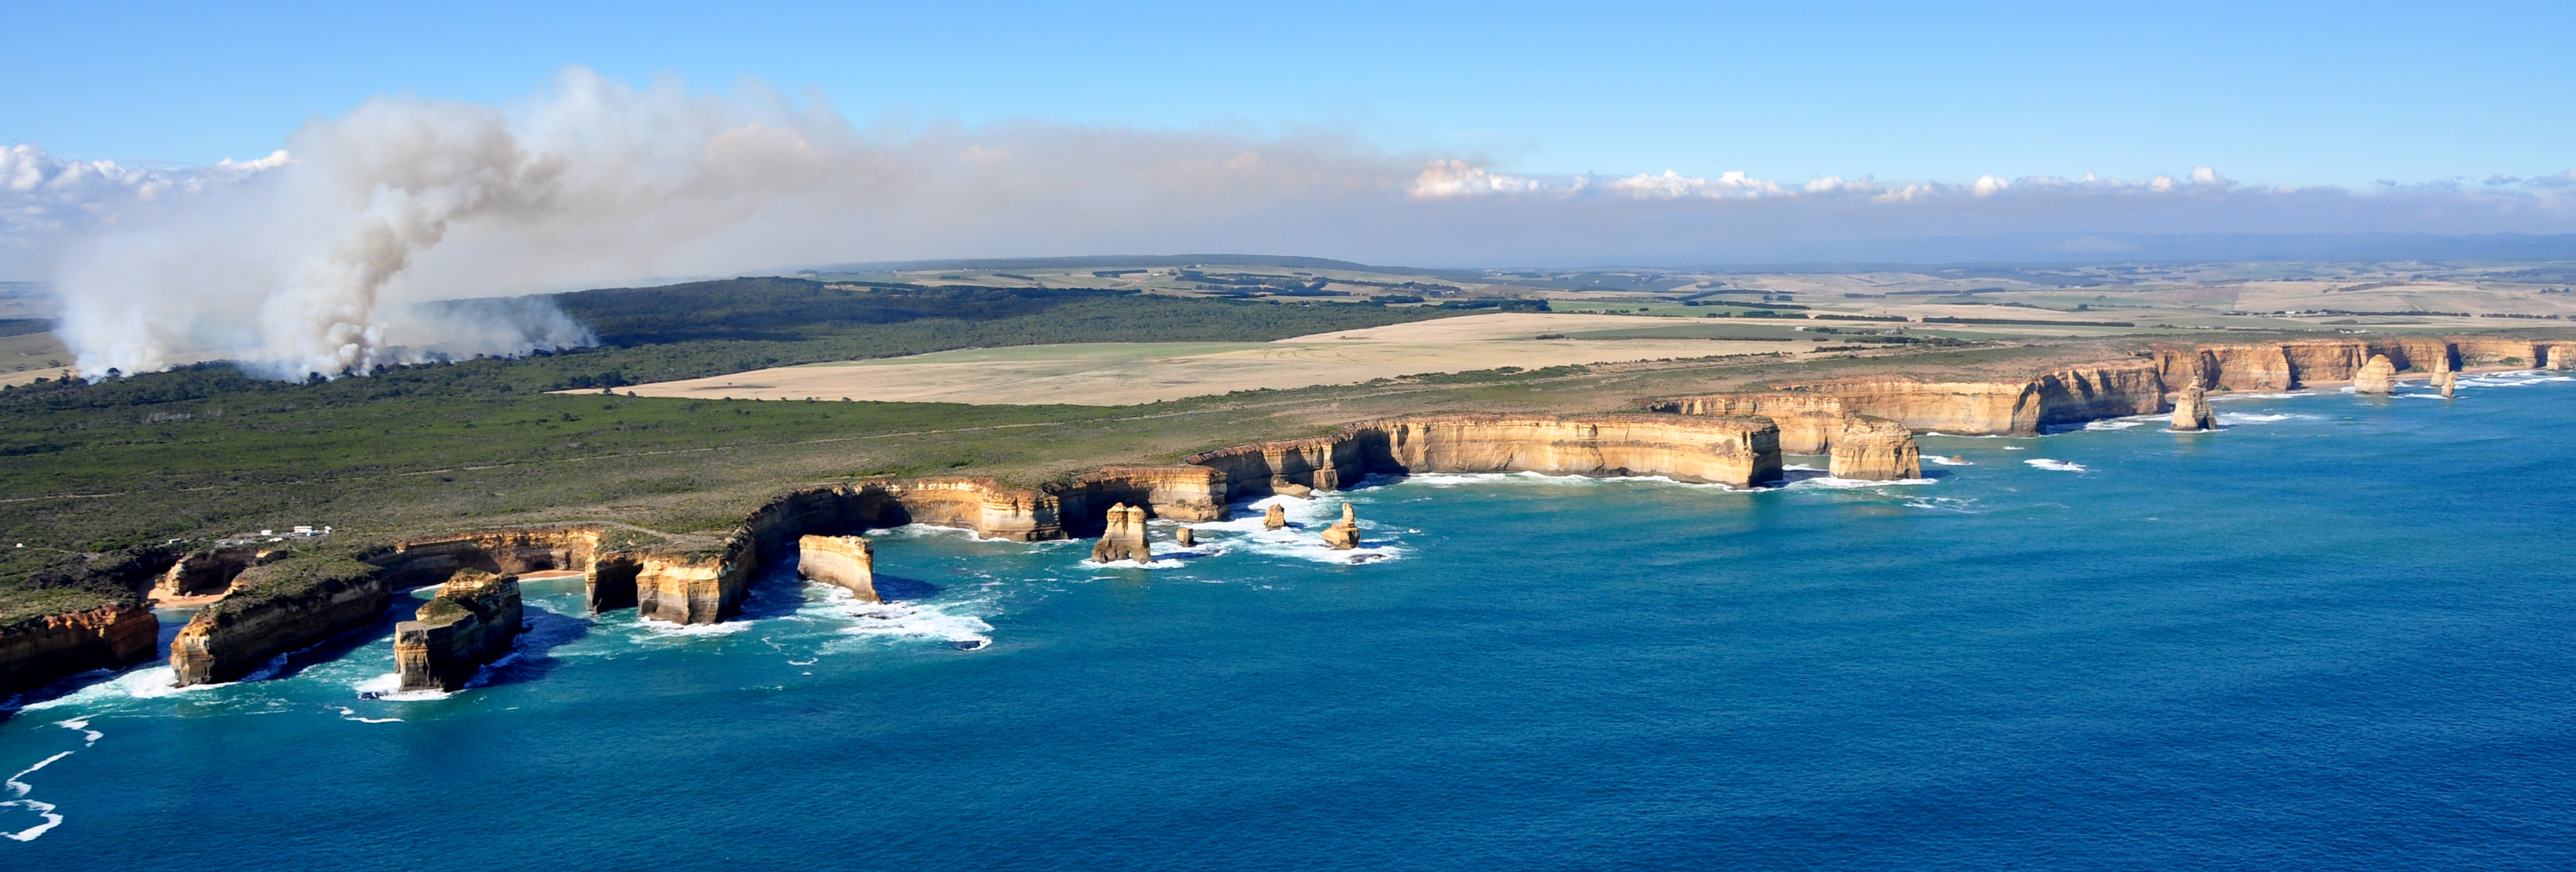 File:Twelve Apostles -Australia -aerial view-25March2009.jpg - Wikimedia Commons